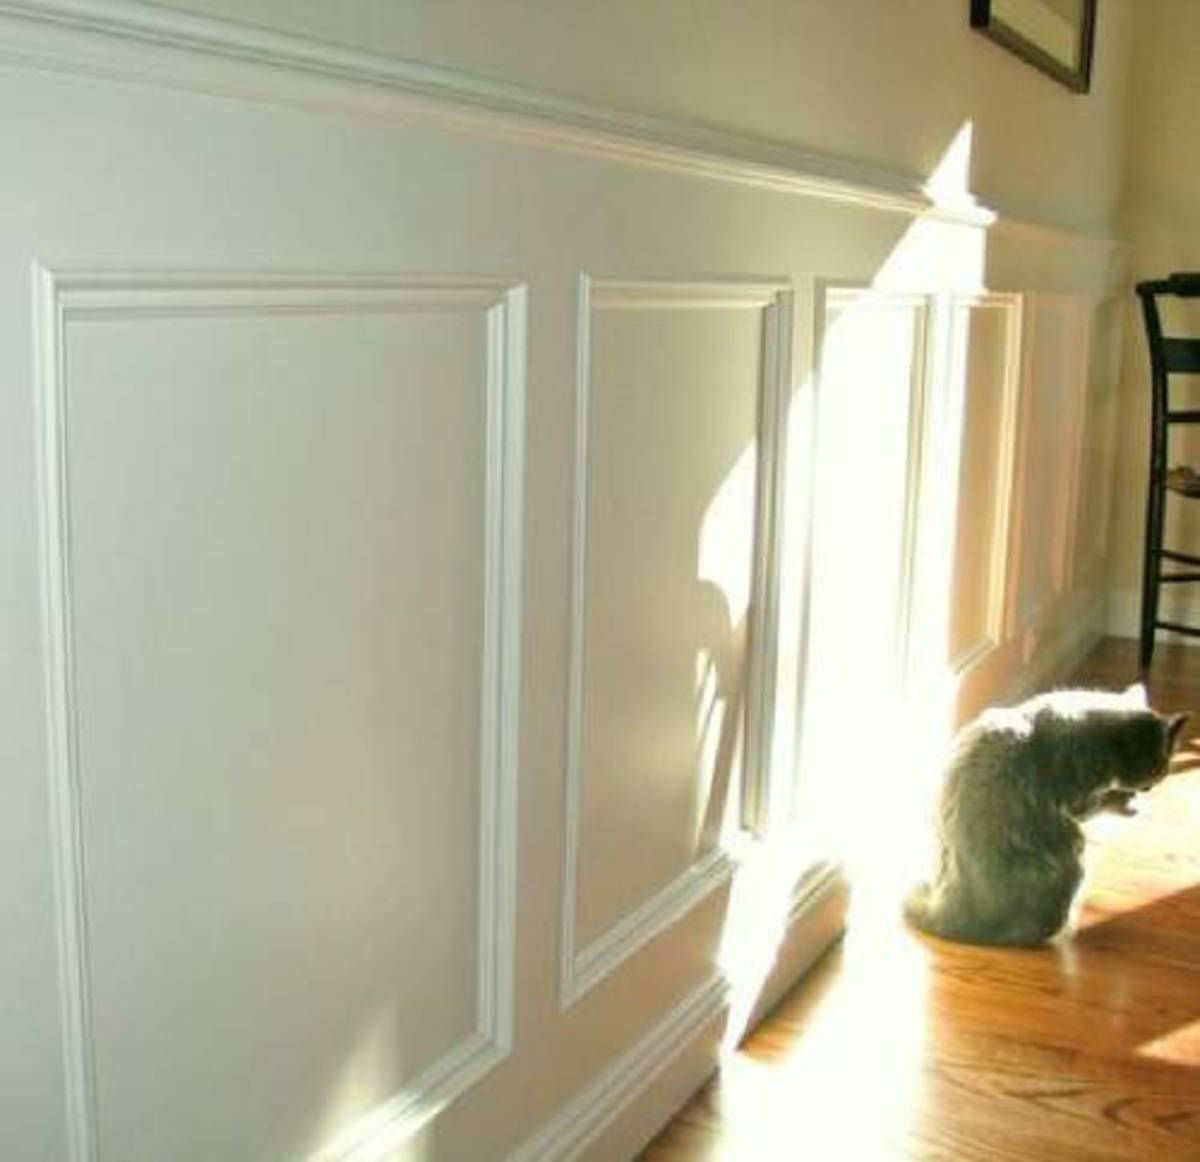 Picture molding can create wainscoting and wall frames to give a room depth and texture.